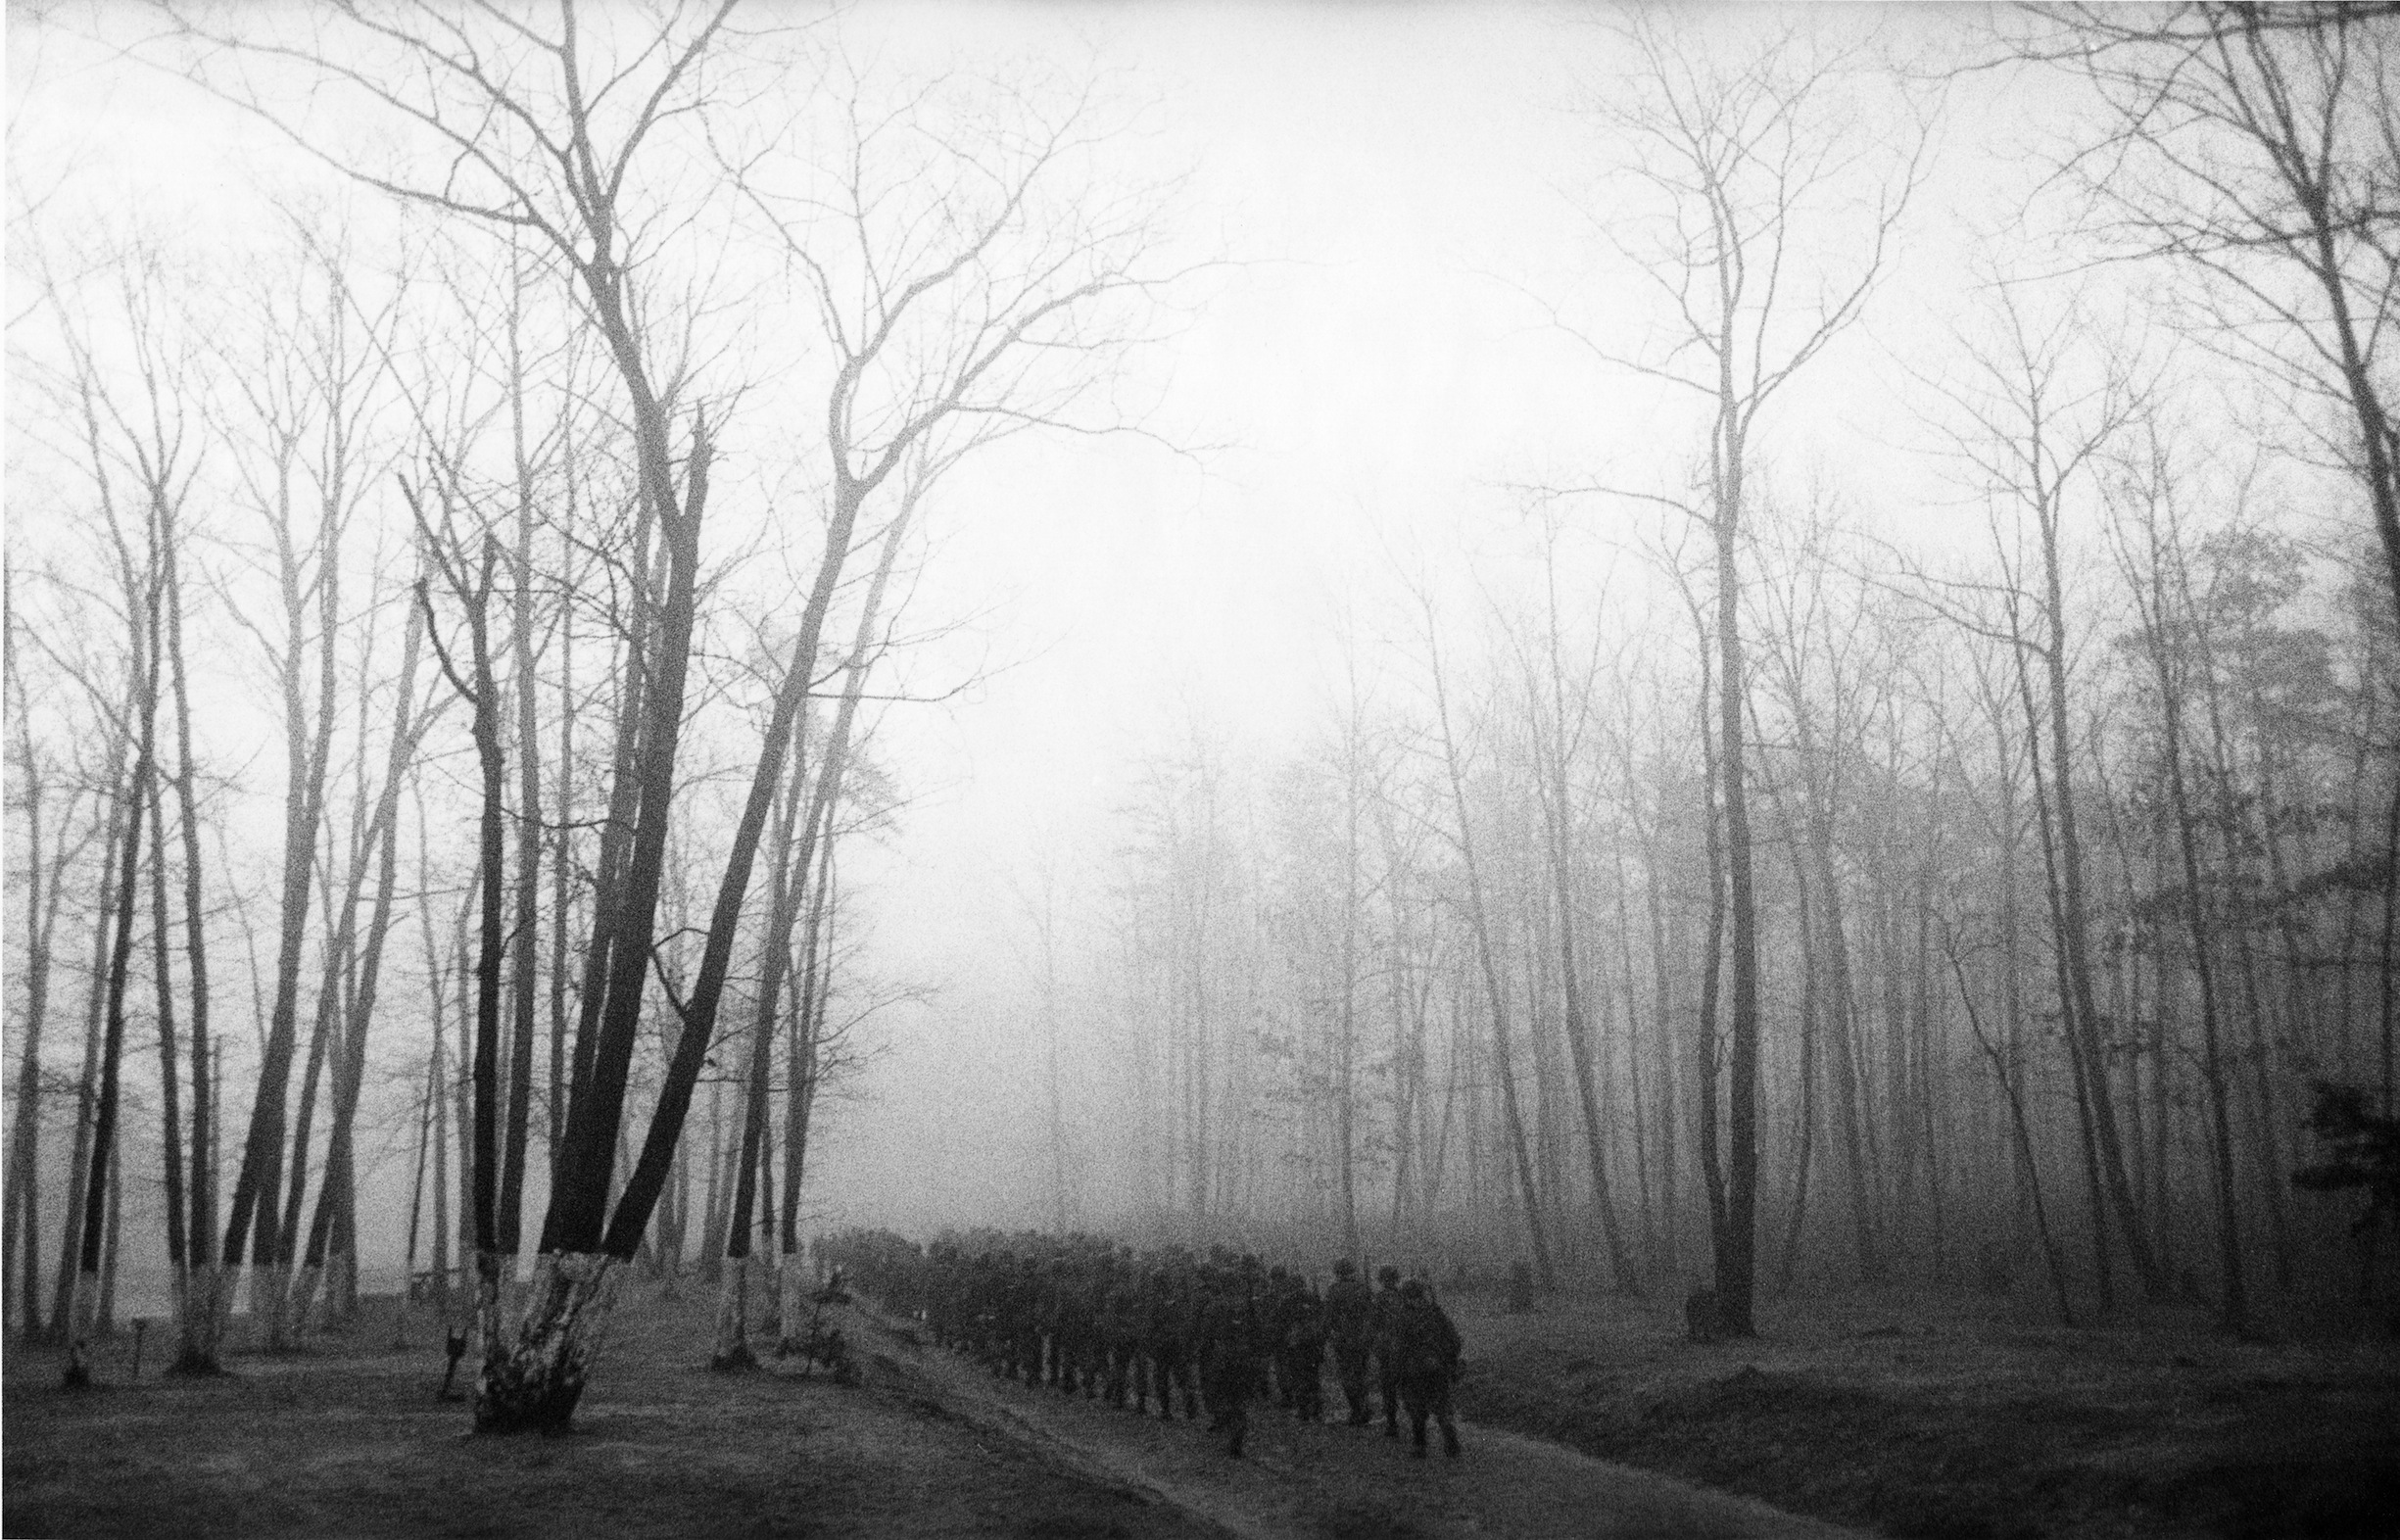 Marching in the Mist, 1952